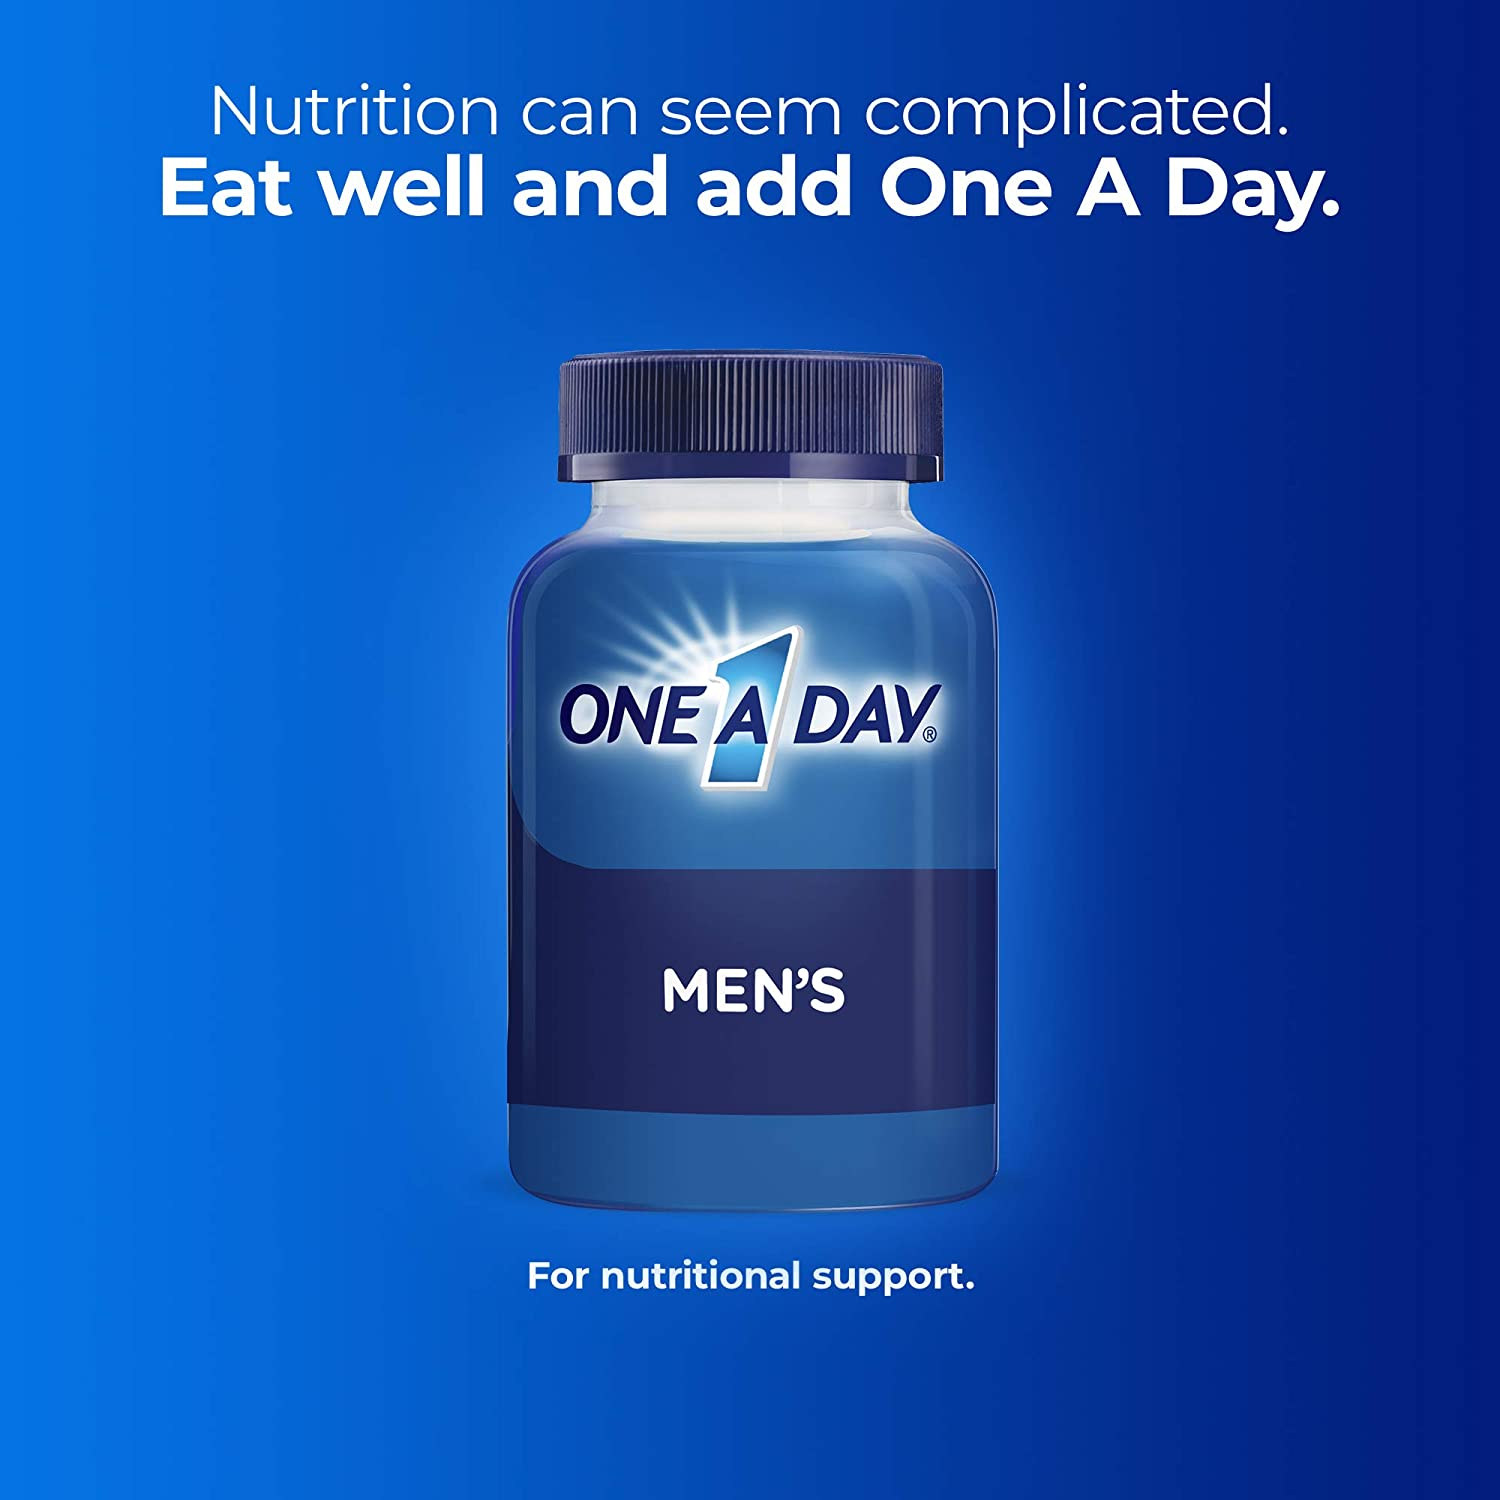 One A Day Men's Multivitamin, Supplement with Vitamin A, Vitamin C, Vitamin D, Vitamin E and Zinc for Immune Health Support, B12, Calcium & More, 200 Count: Health & Personal Care